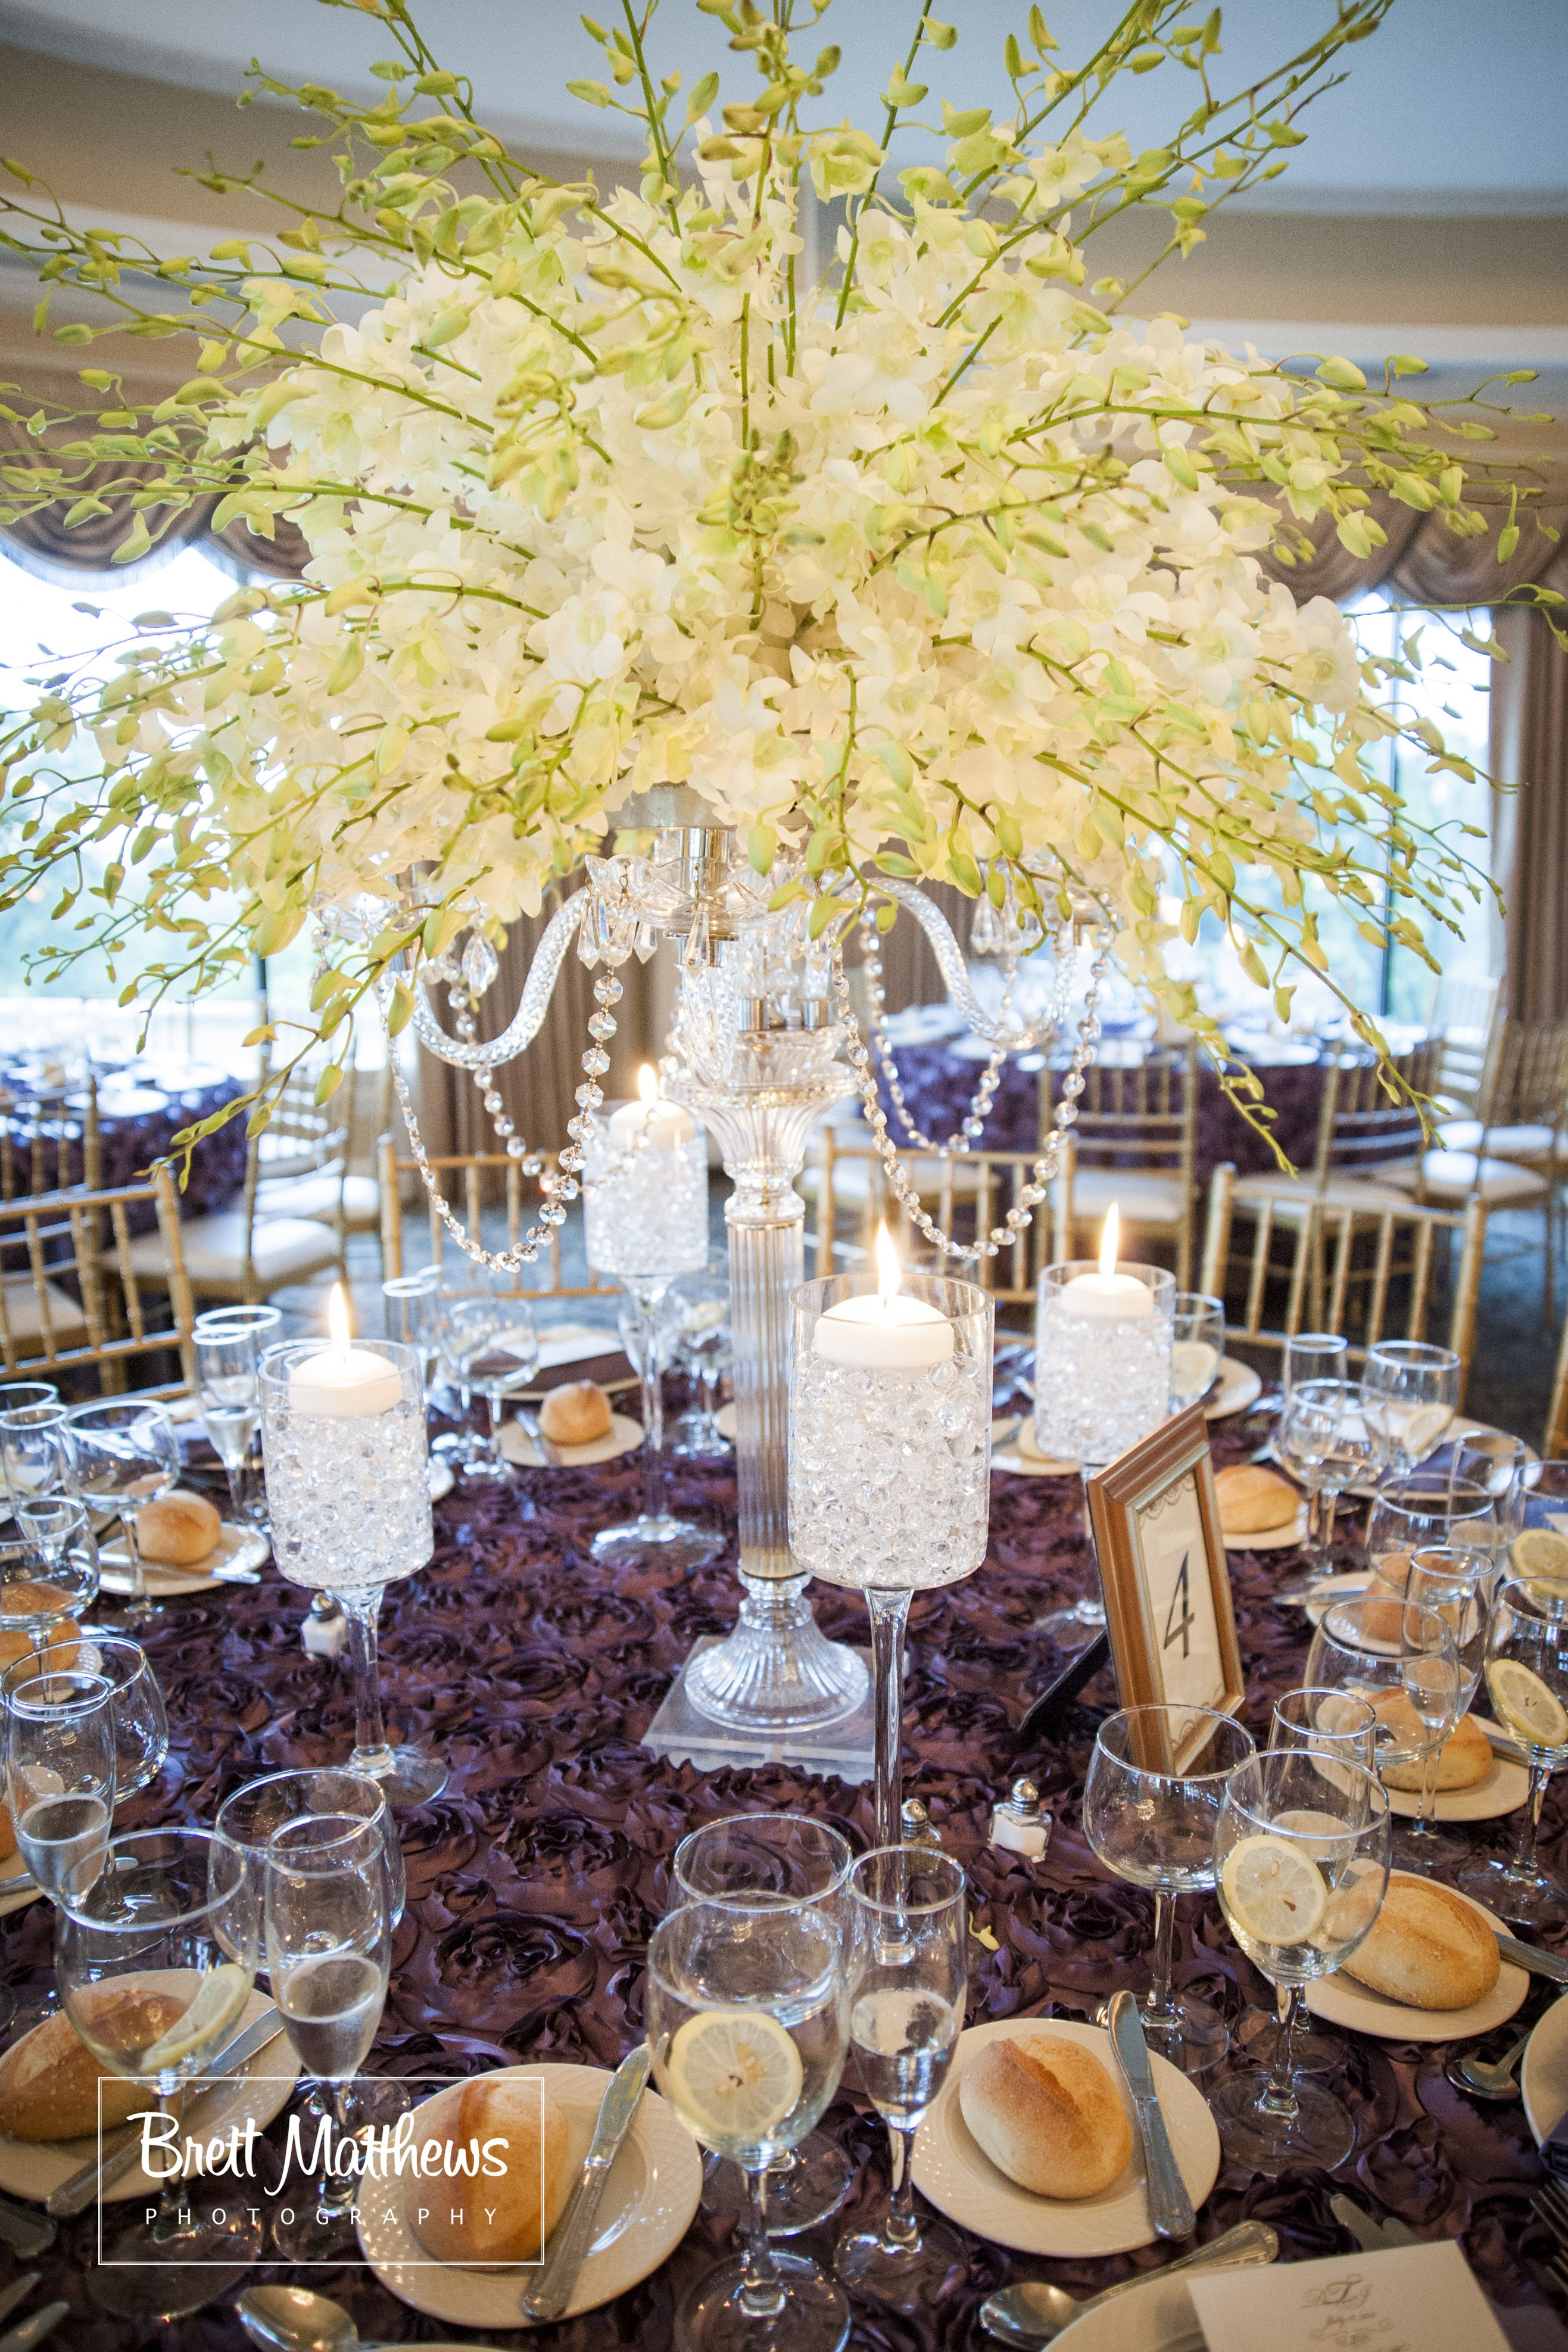 James Anthony Floral at Oheka Castle July 2013. Photo compliments to Brett Matthew Photography